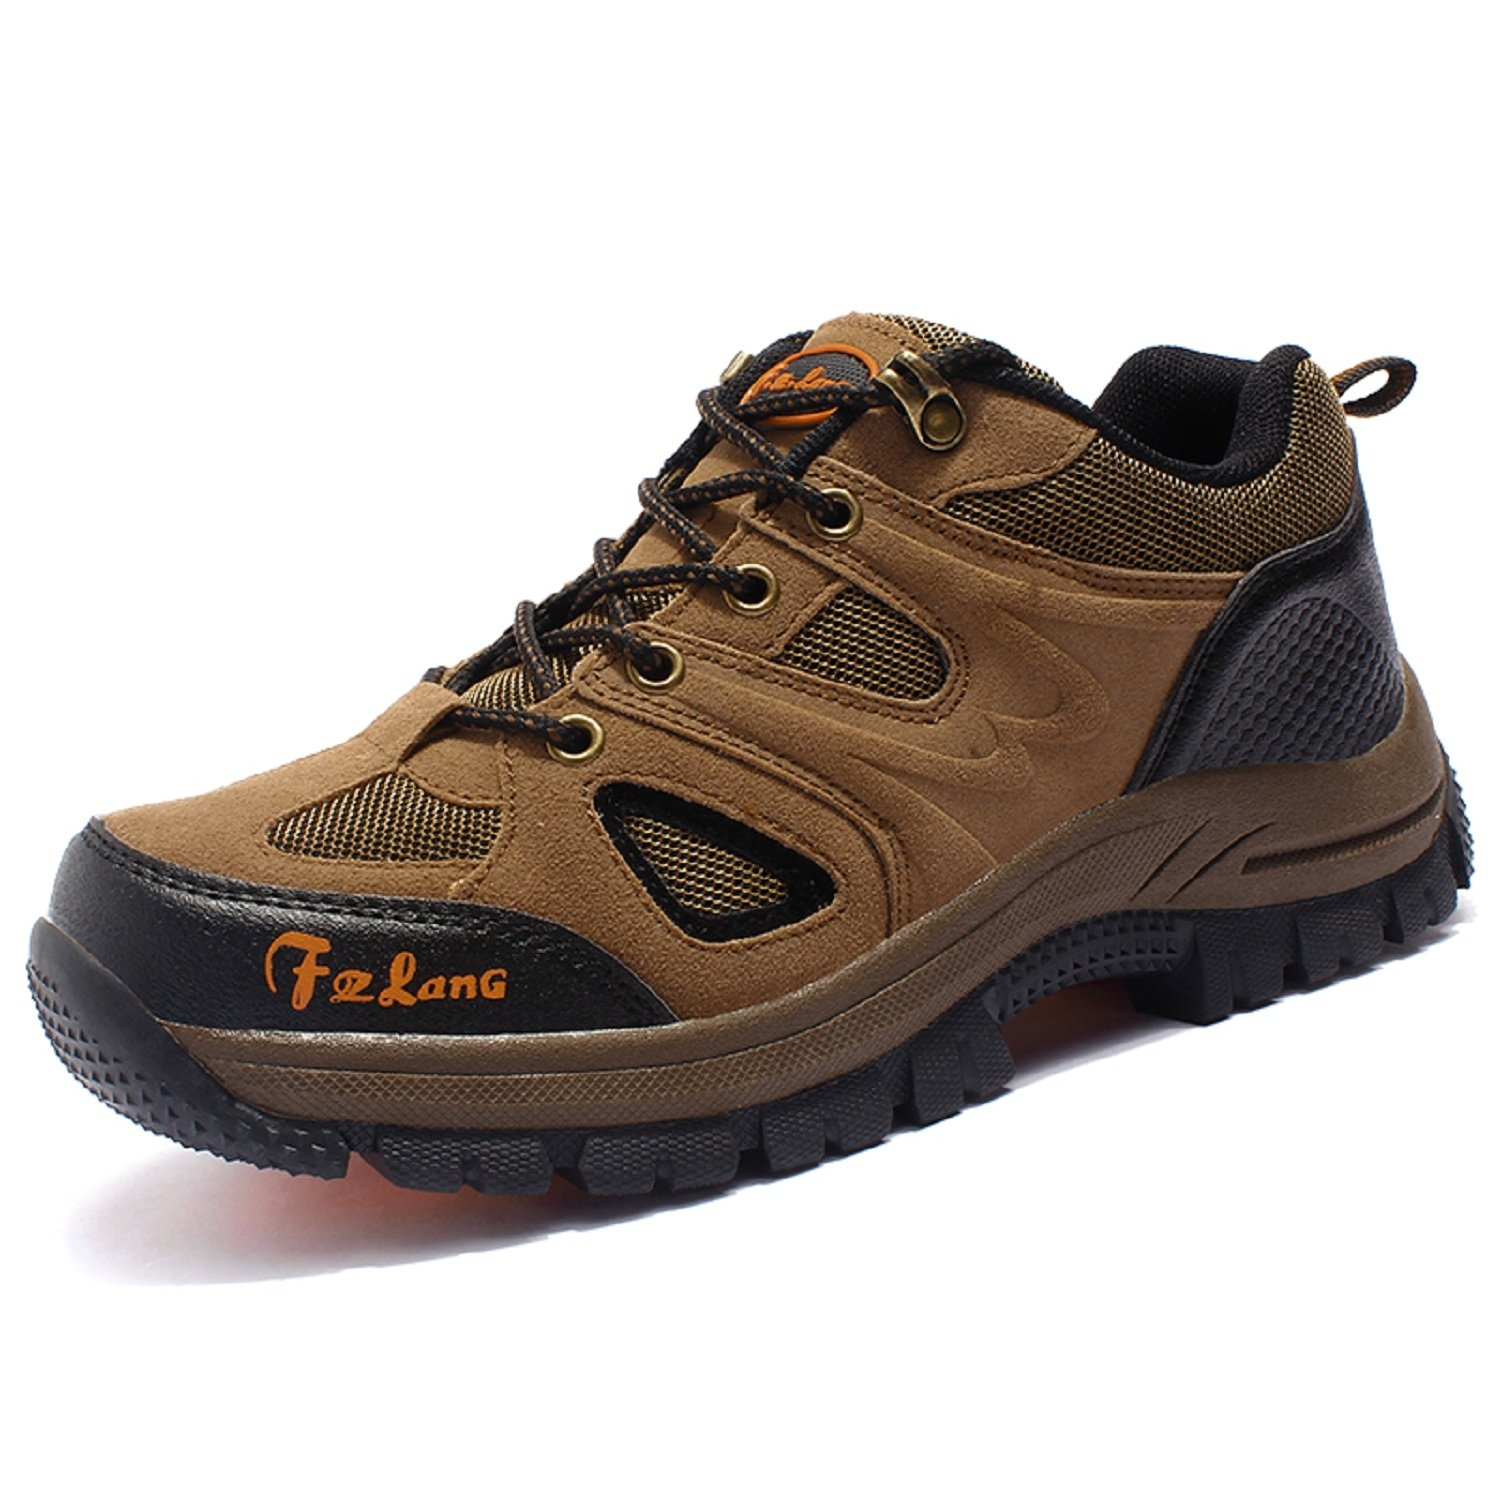 T-Gold 2017 Men's Waterproof Low Hiking Shoe Outdoor Breathable Climing Trekking Sports Summer by T-Gold (Image #1)